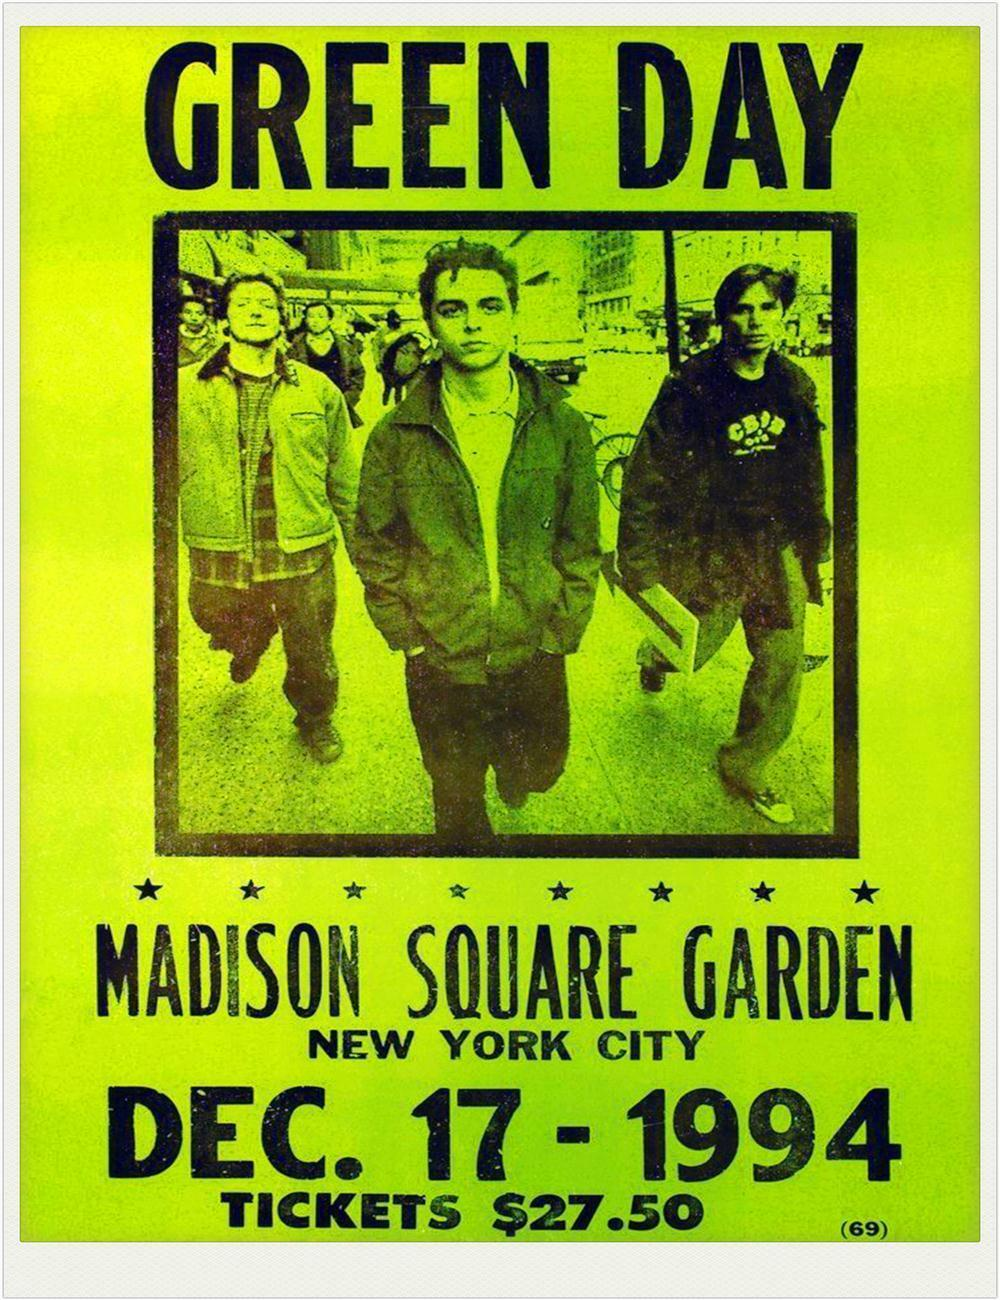 Details about 0604 Vintage Music Poster Art - Green day Madison Square  Garden 1994